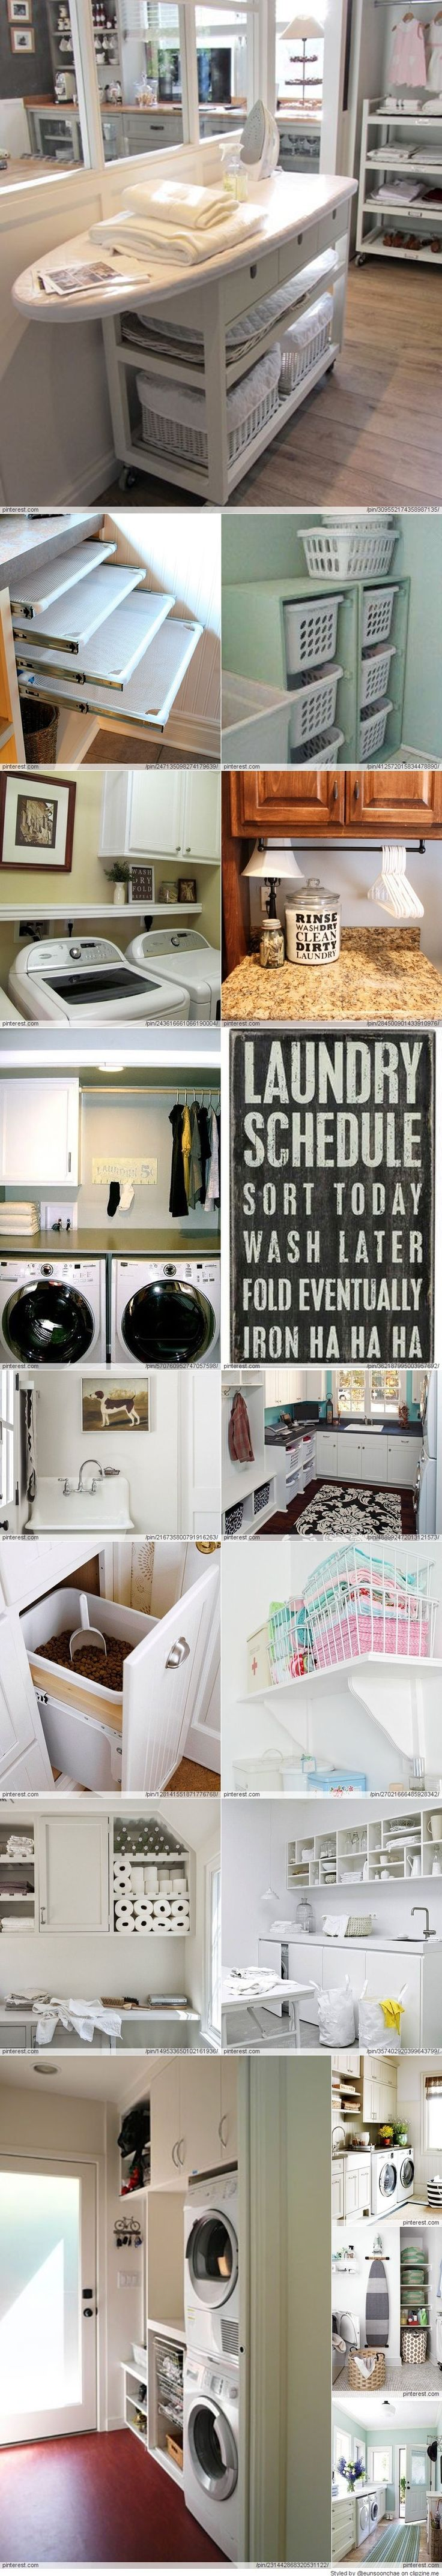 138 best laundry room design images on pinterest laundry room